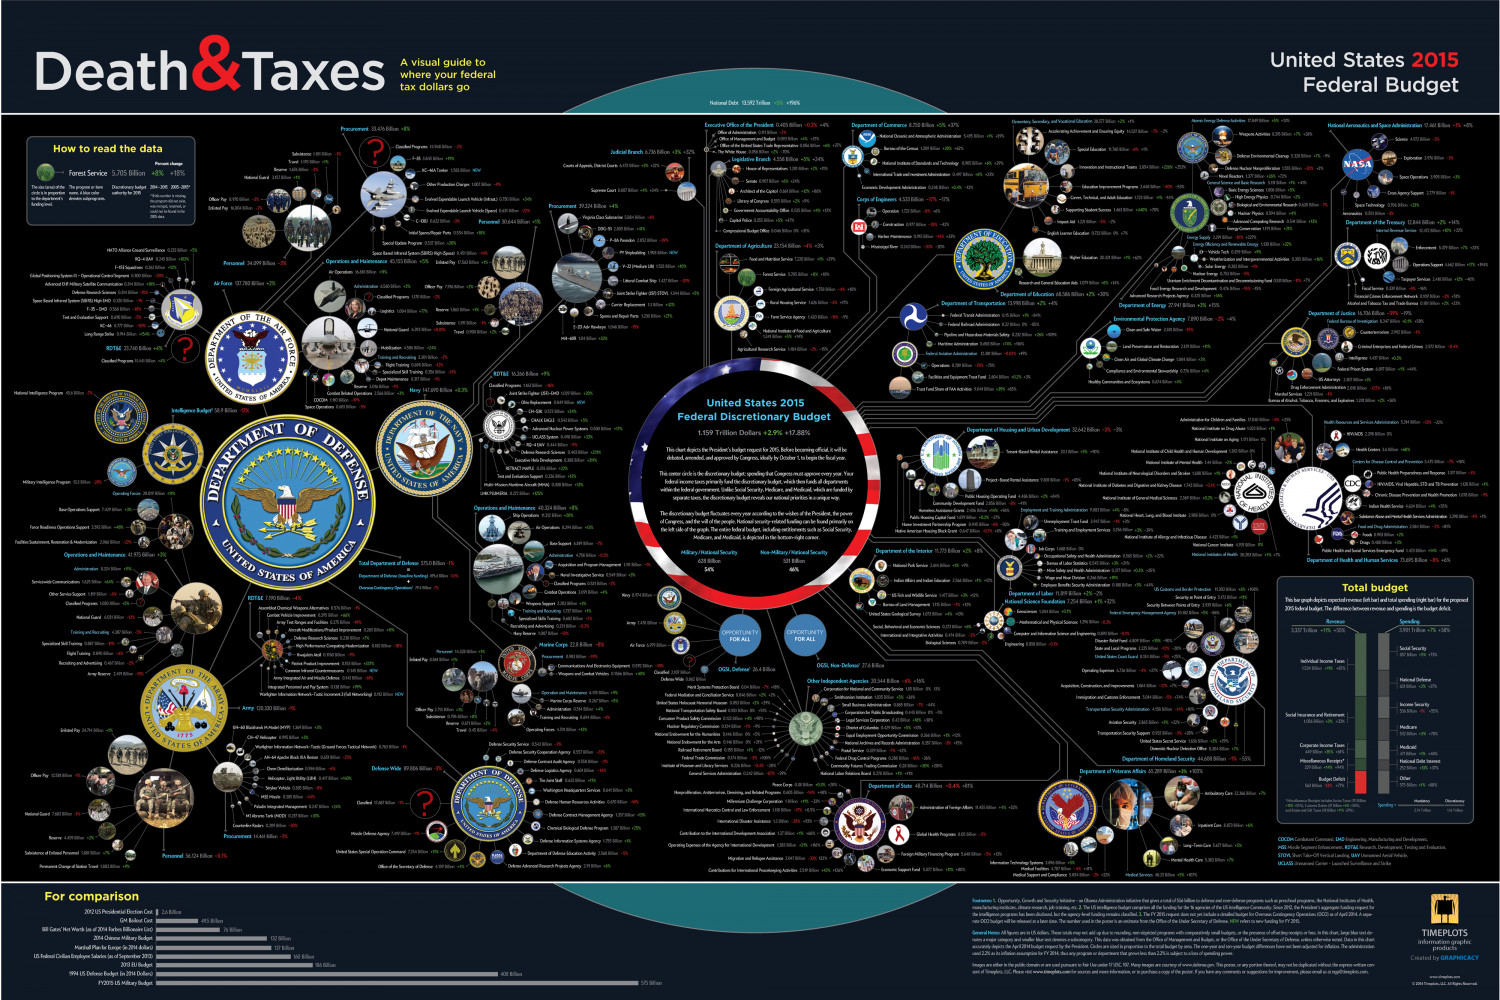 Death and Taxes 2015 Infographic